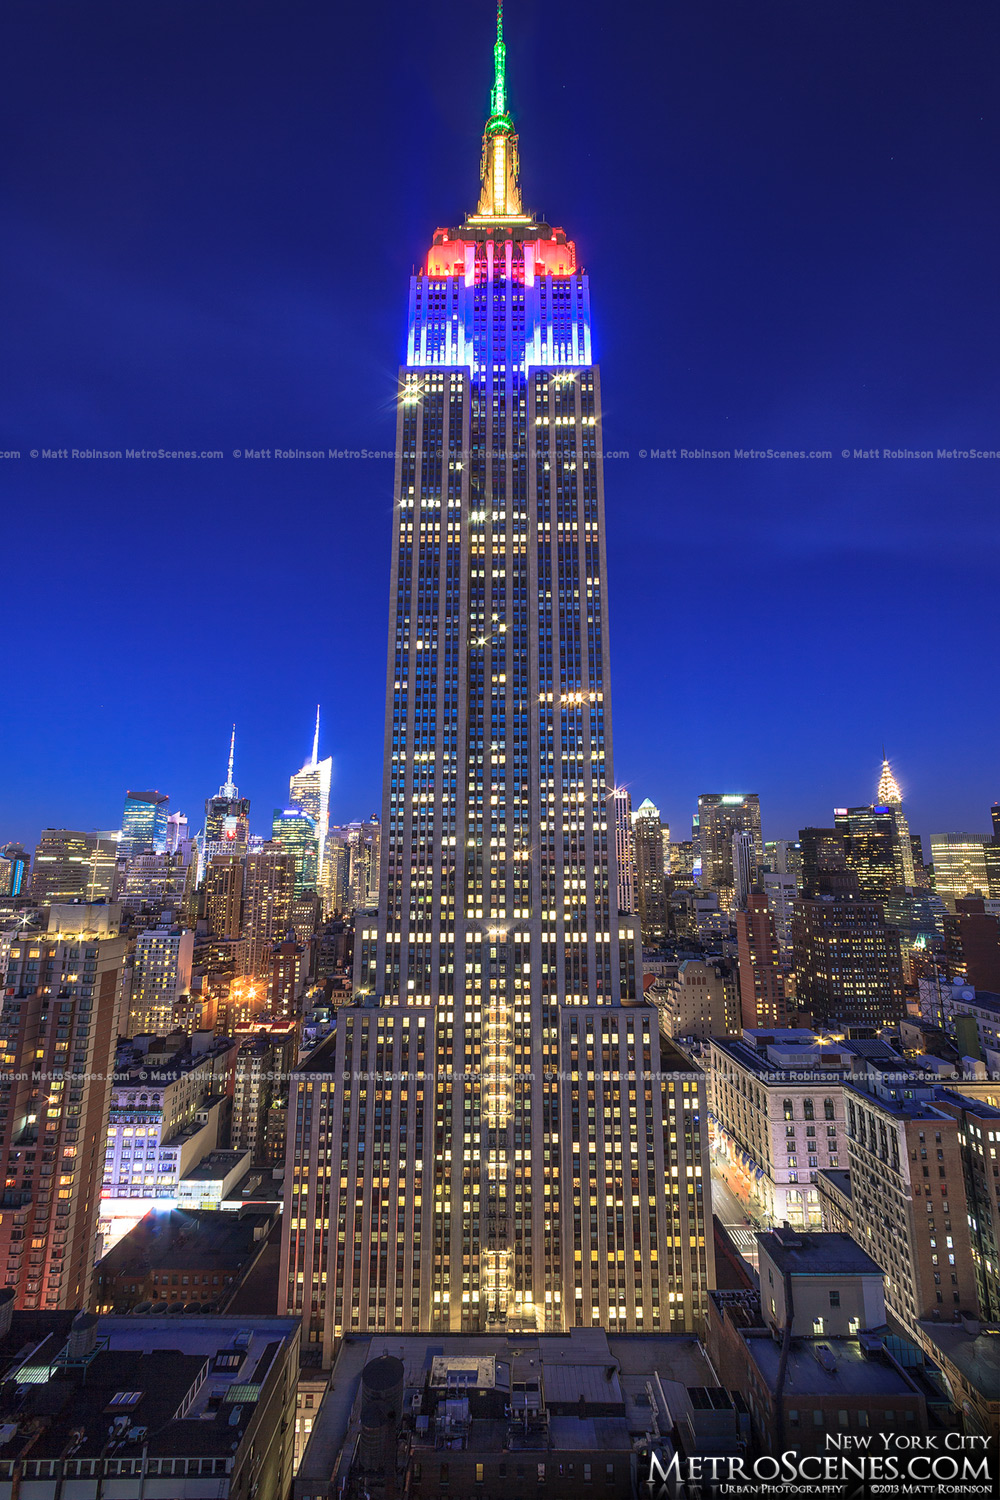 Looking up at the Empire State Building at night